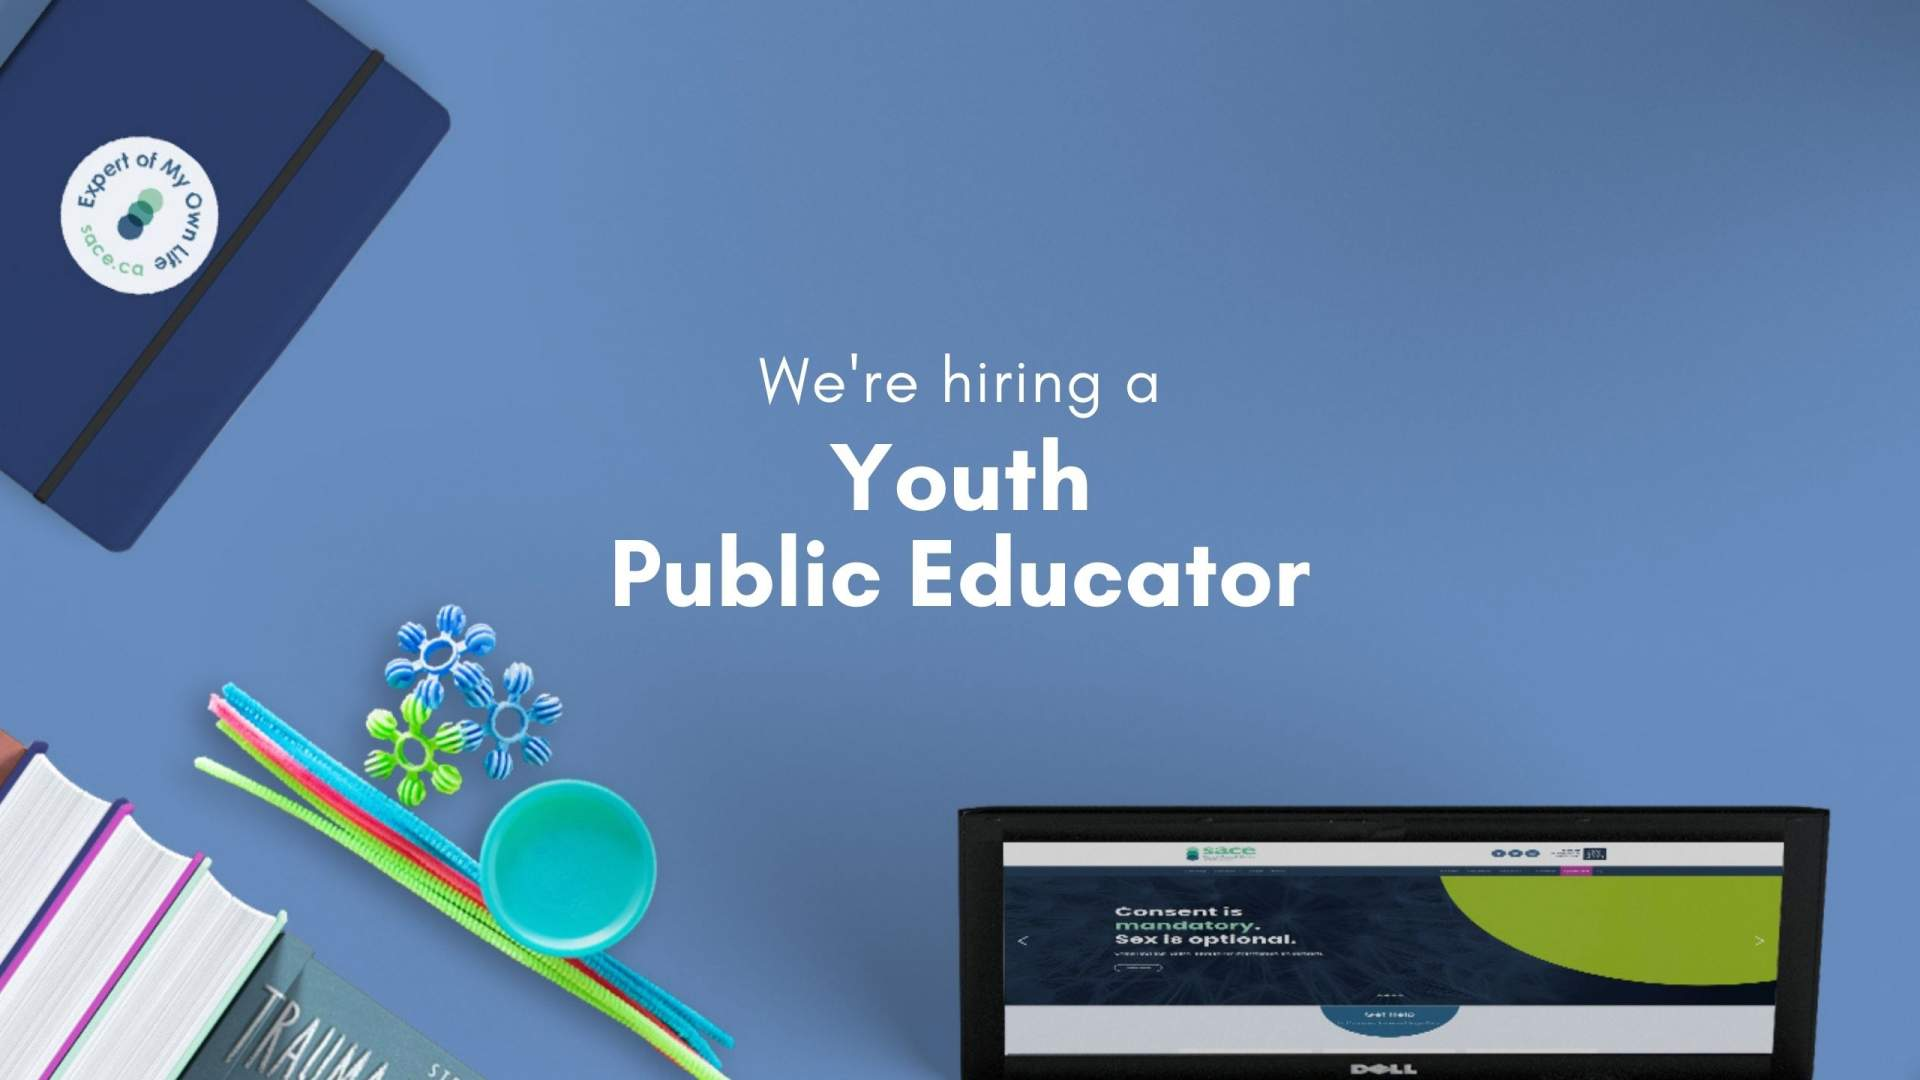 We're hiring a youth public educator